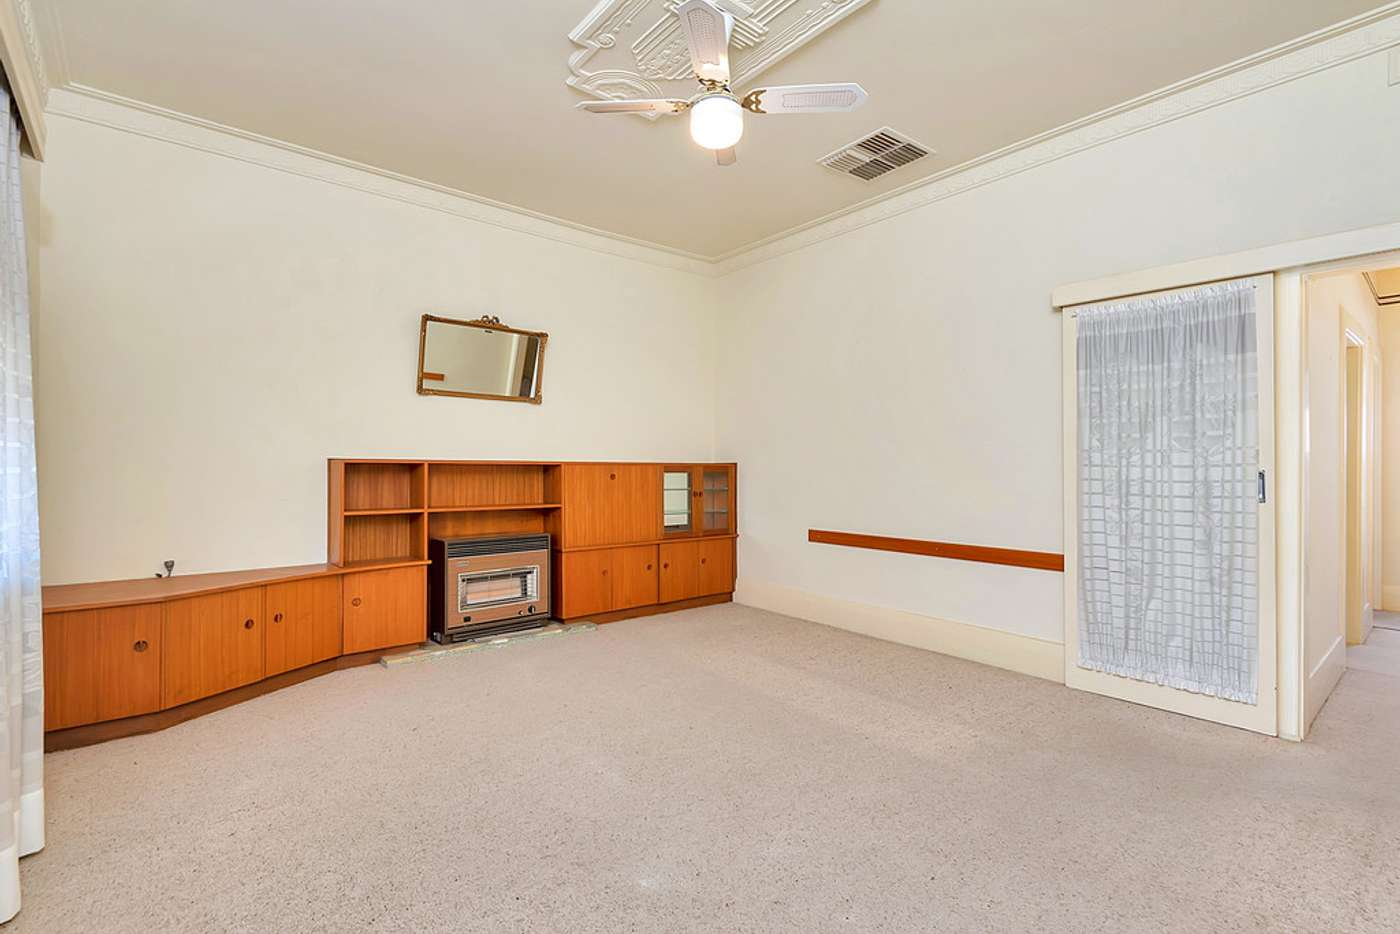 Fifth view of Homely house listing, 41 Llandower Avenue, Evandale SA 5069